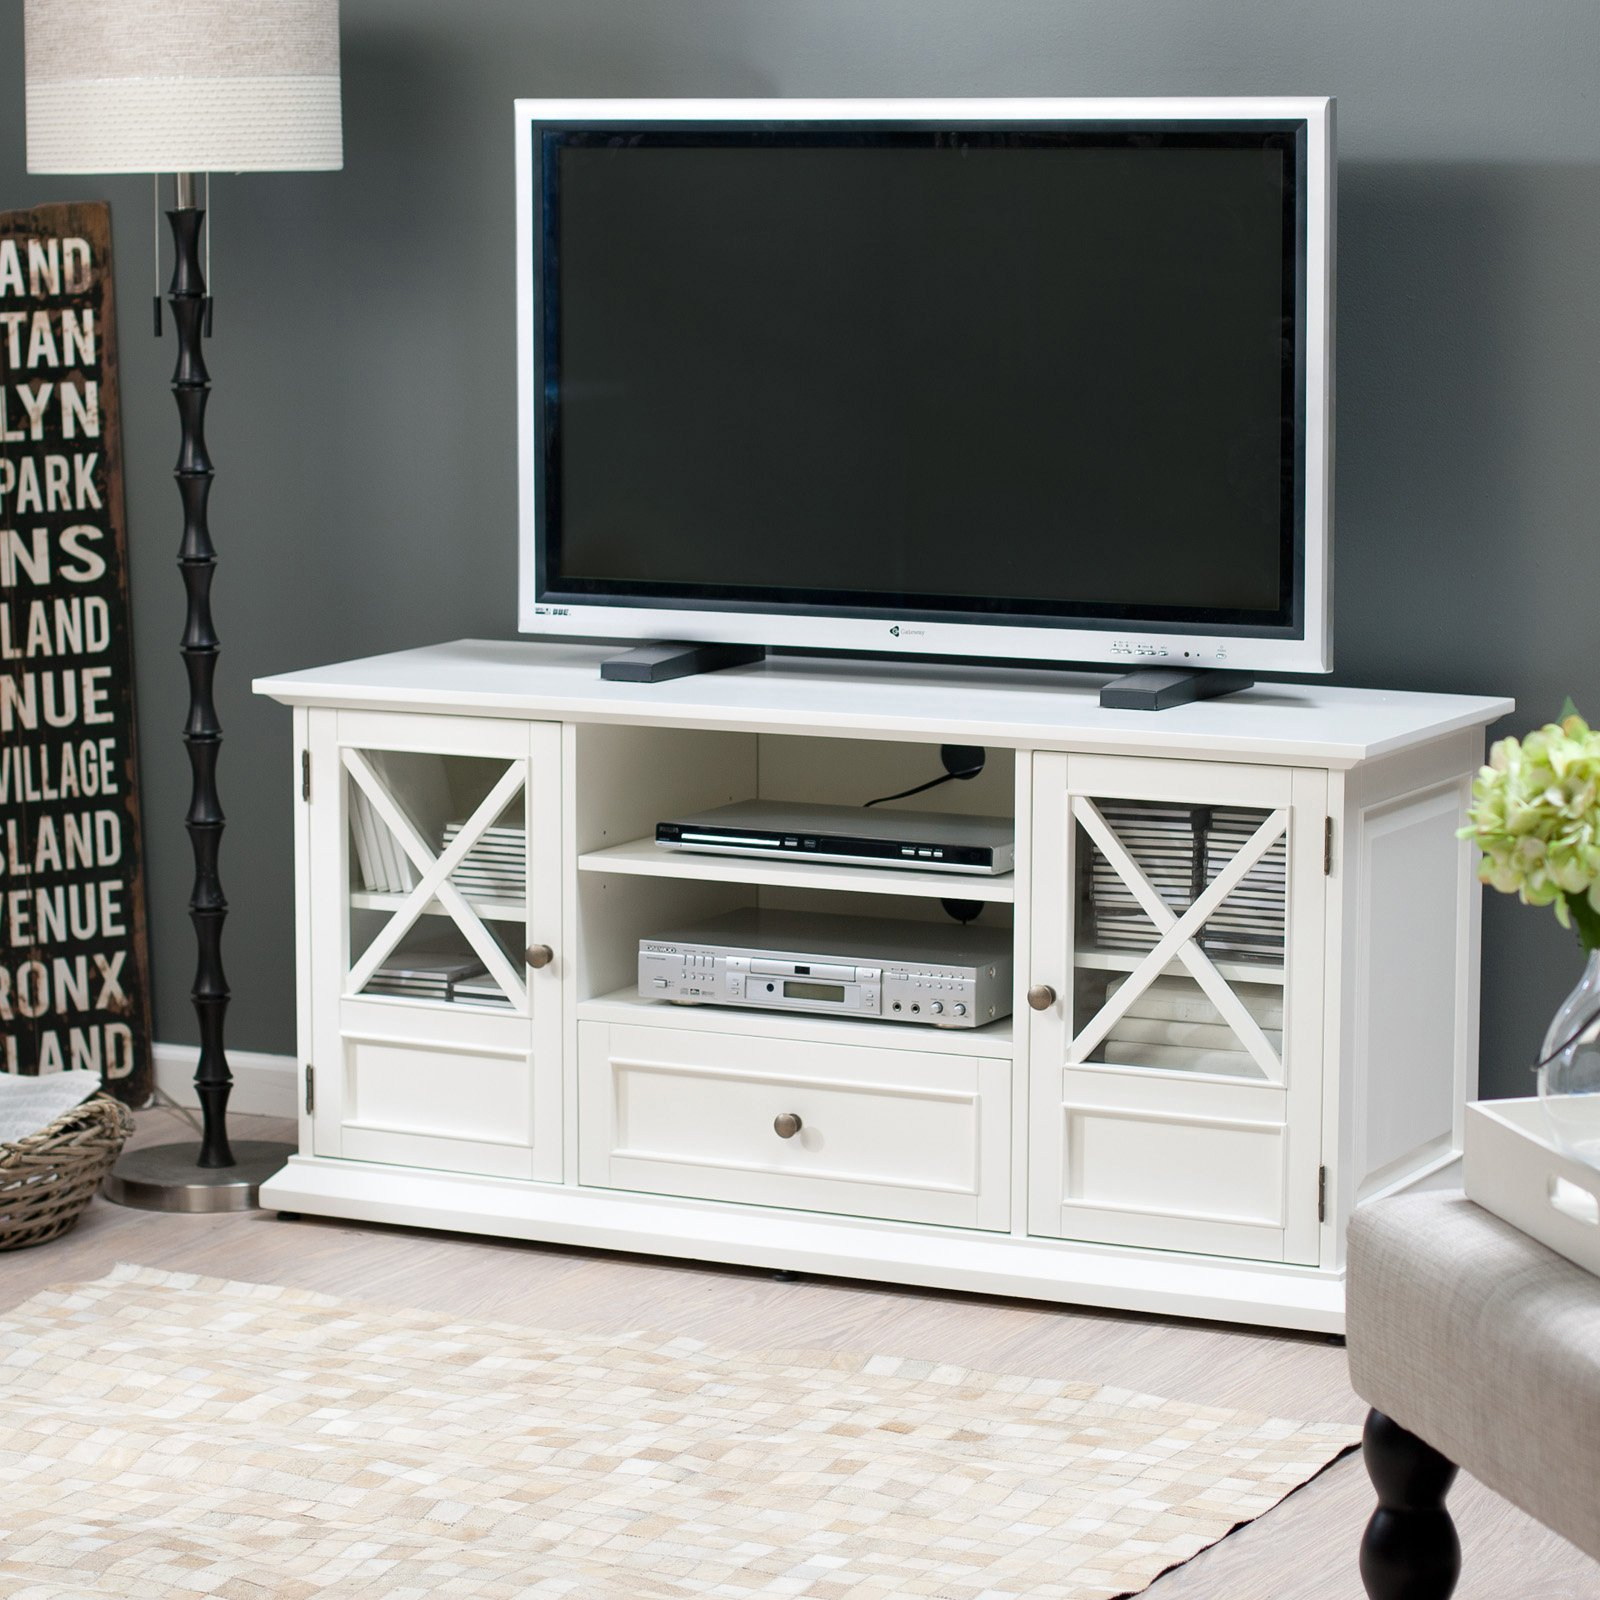 Belham Living Hampton Tv Stand – White – Walmart For Century White 60 Inch Tv Stands (View 6 of 30)